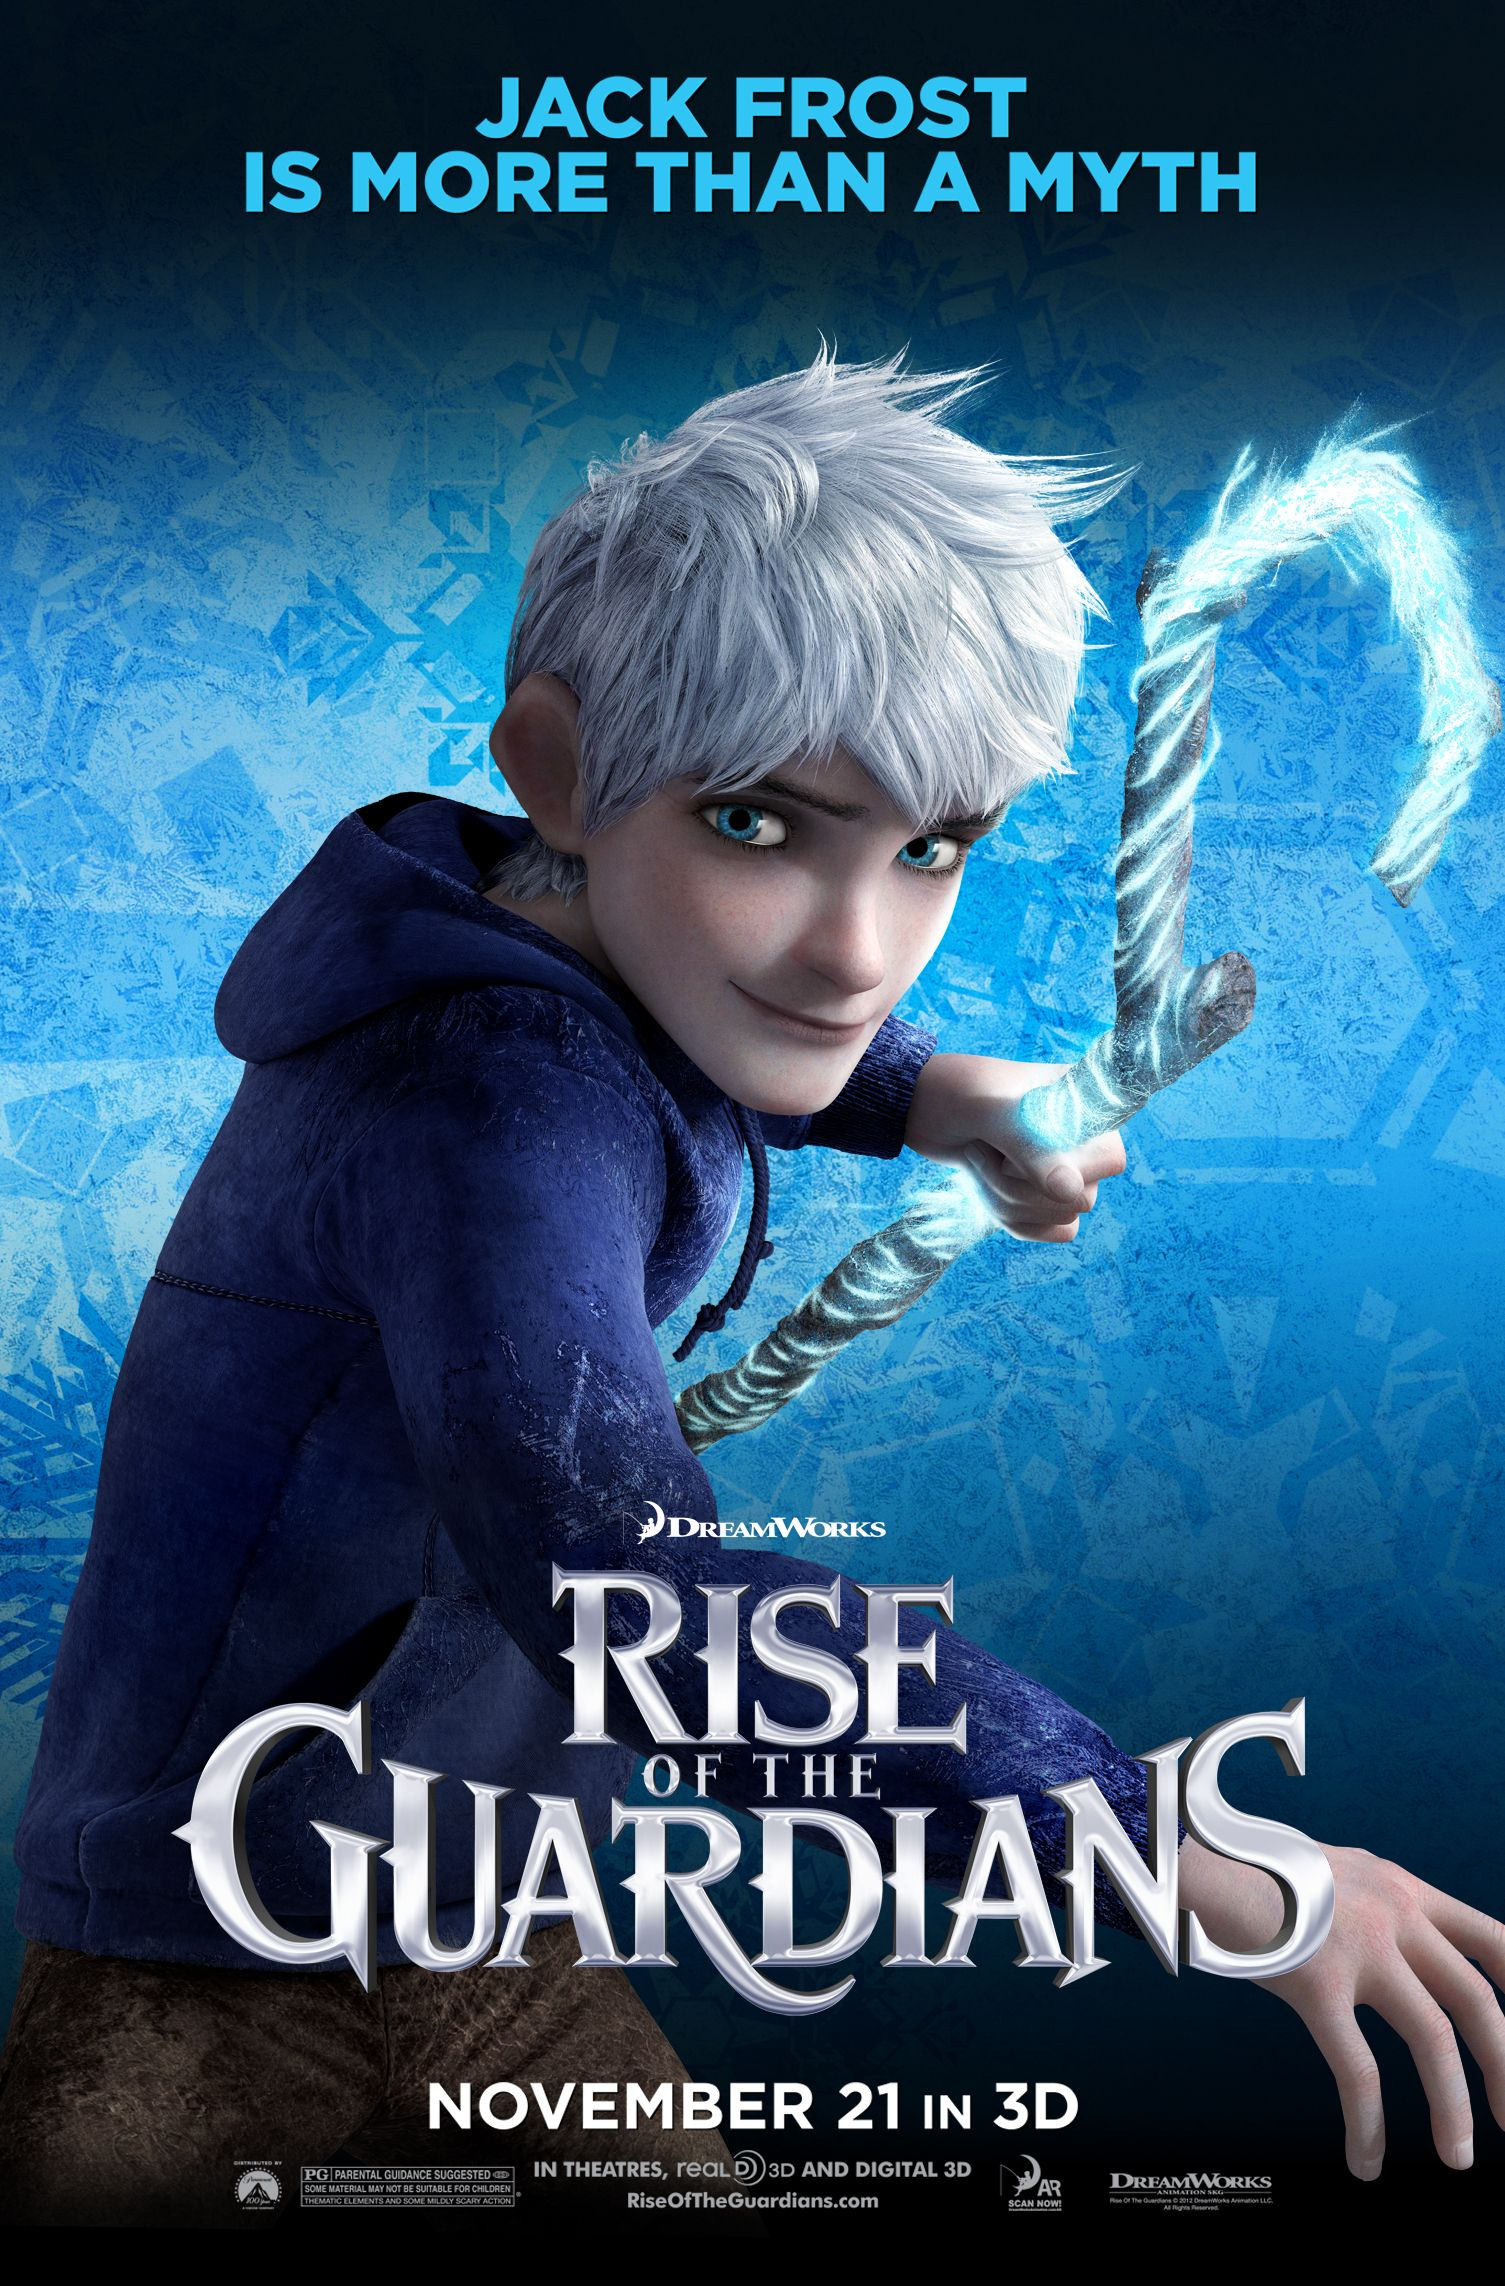 Jack Frost is more than a myth.